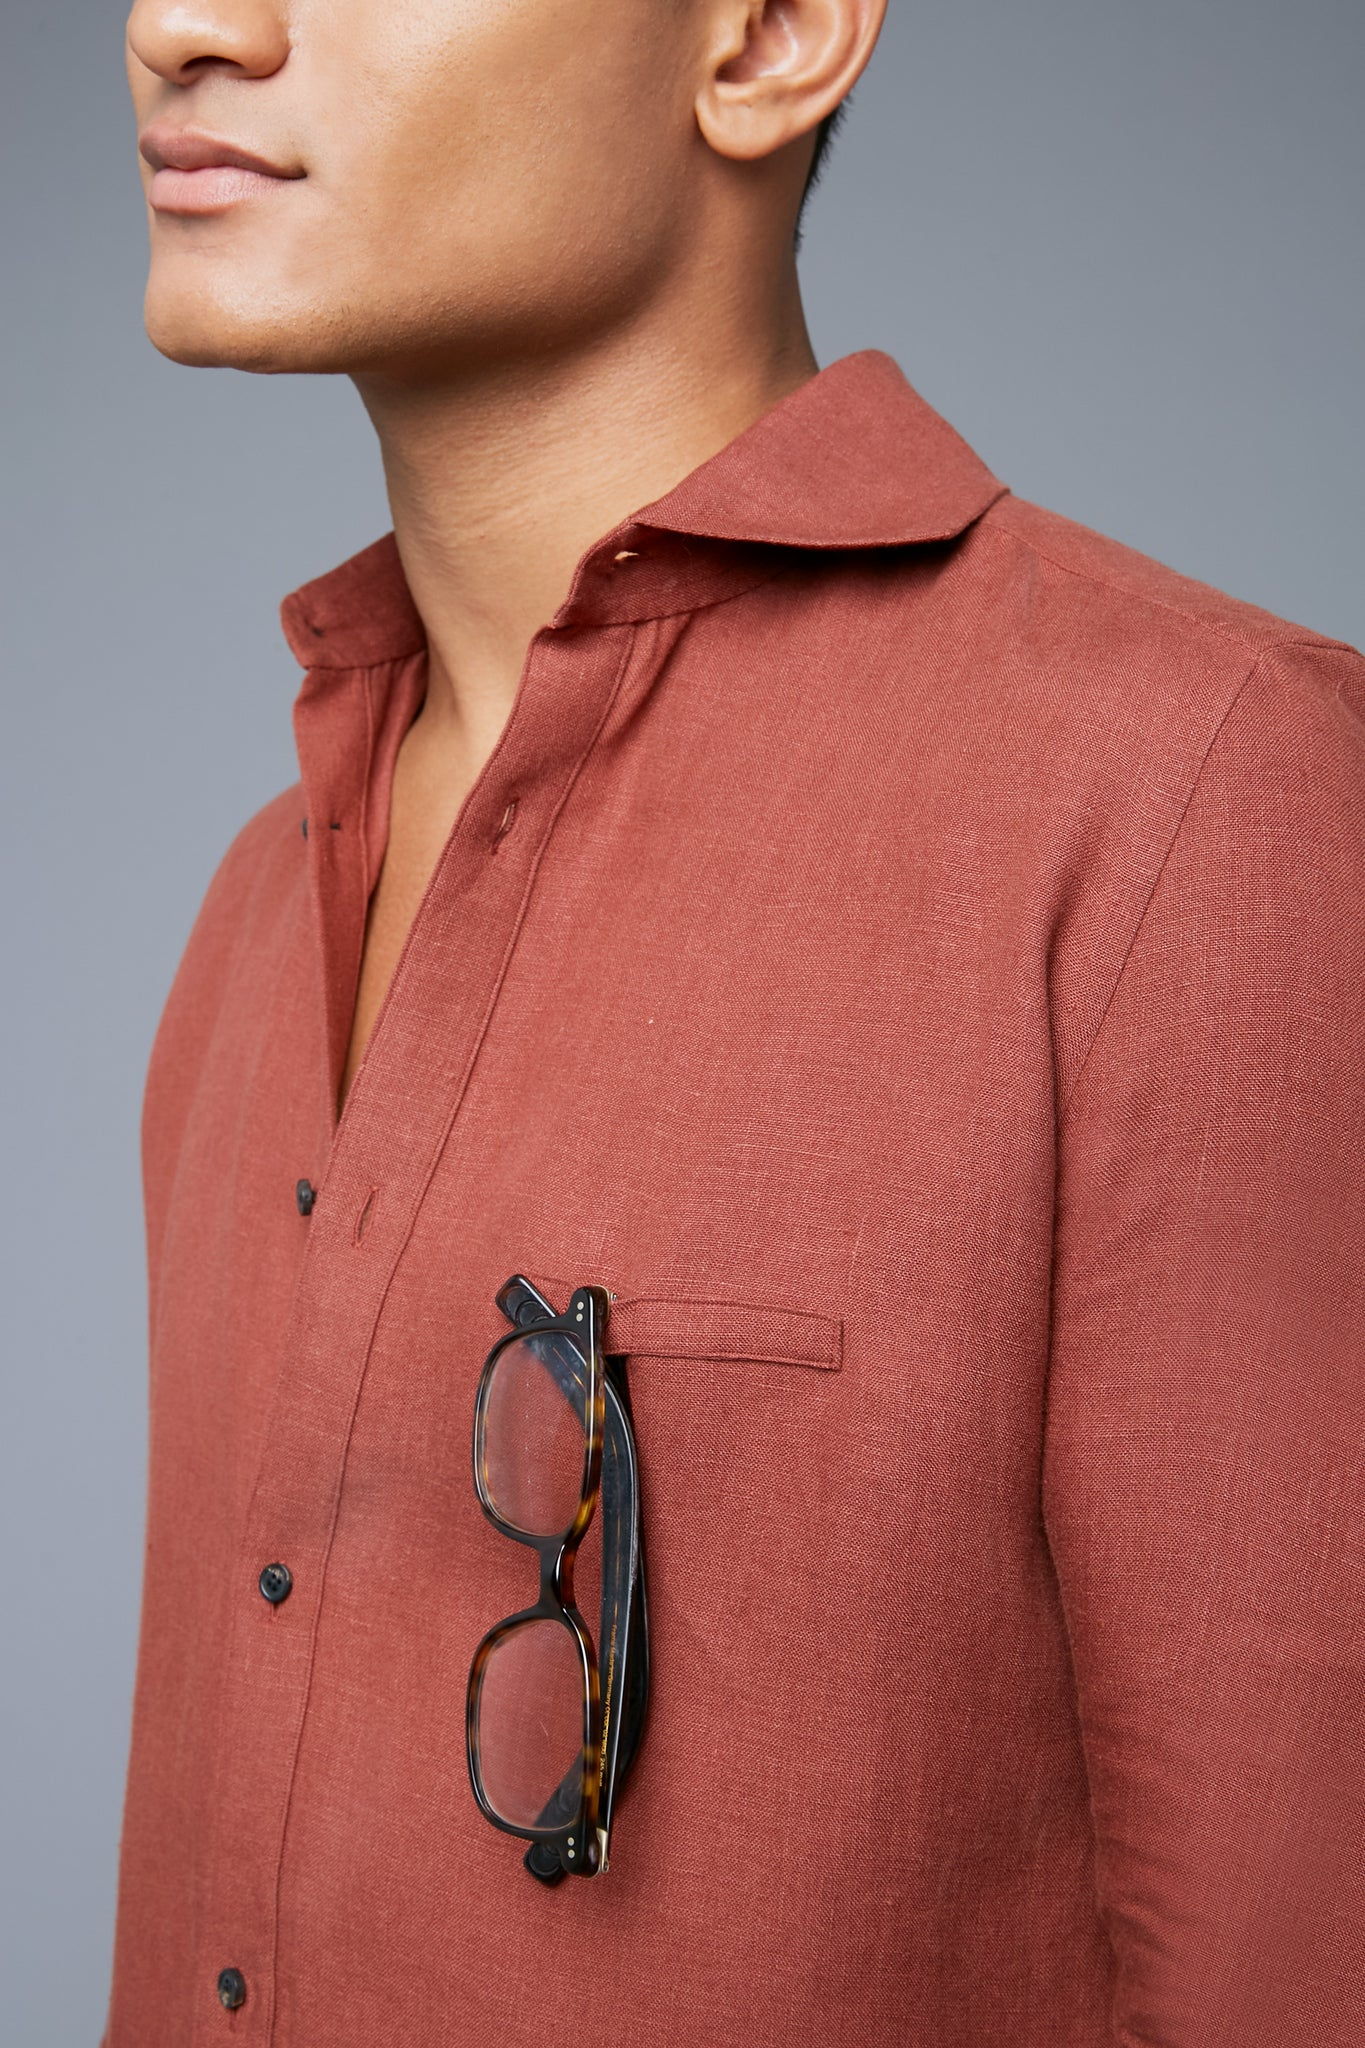 Detail View: Model Tre Boutilier wearing Linen Greenwhich Shirt